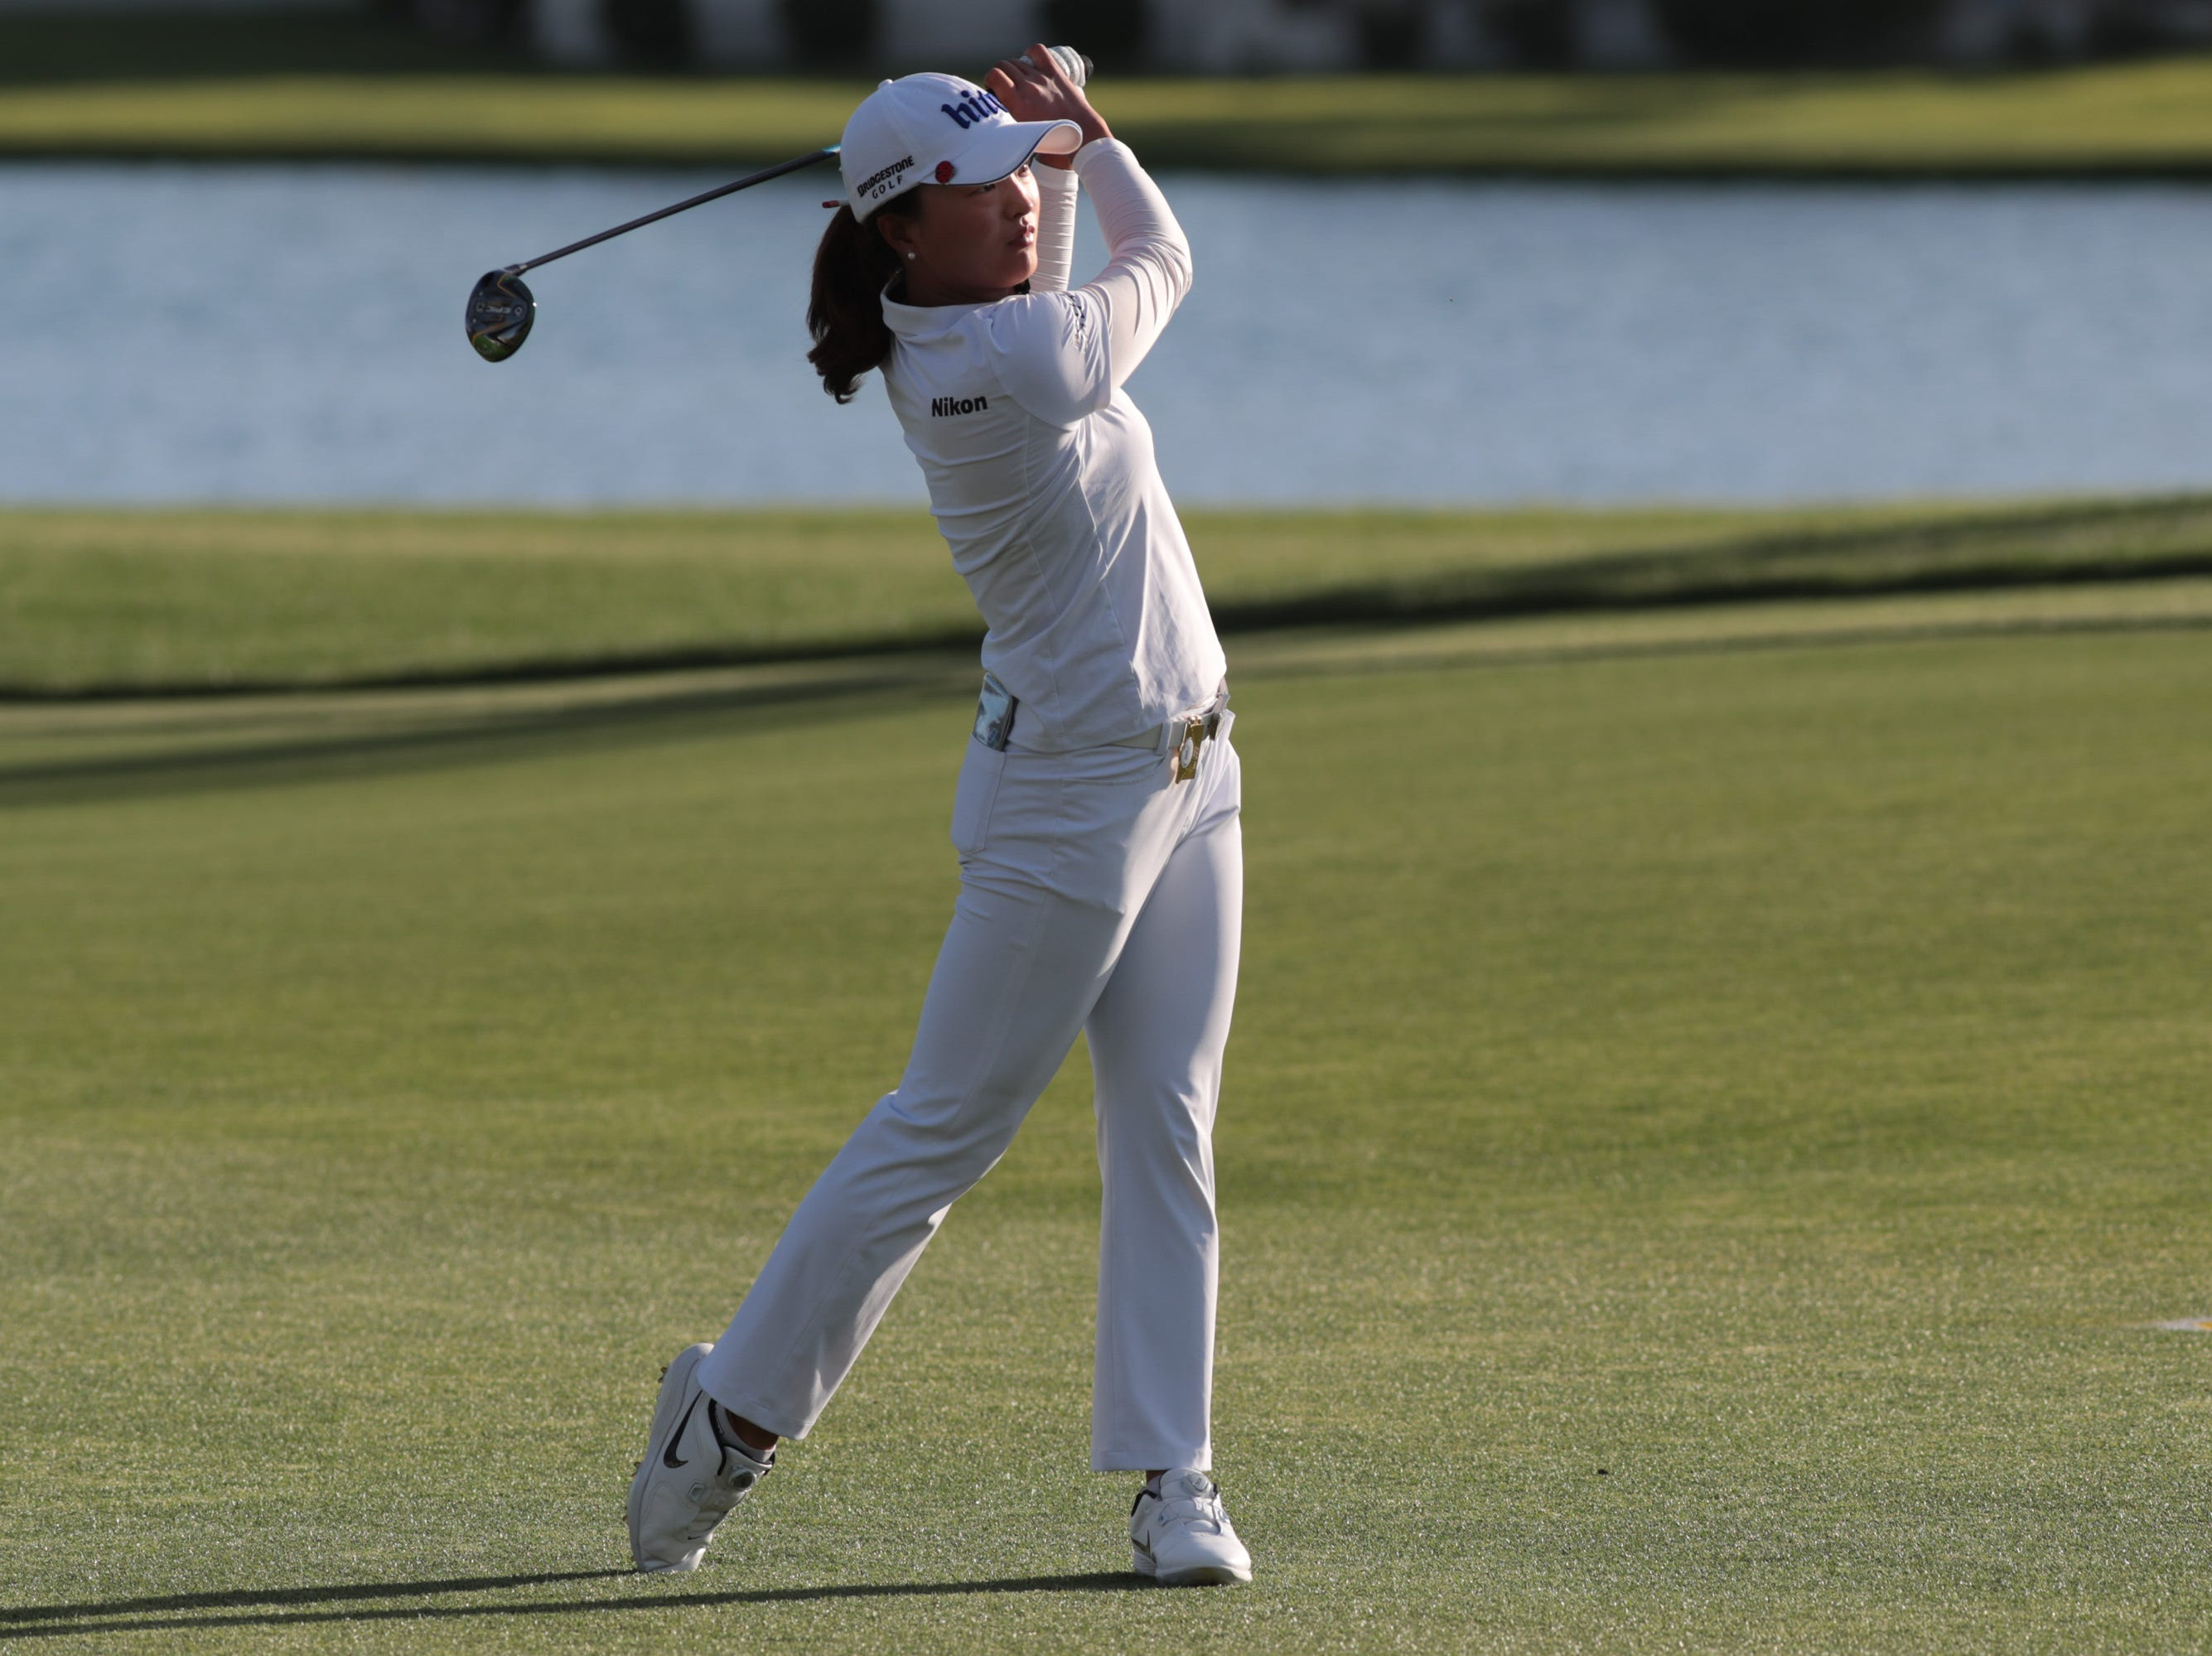 Jin Youg Ko hits on the 18th hole of the Dinah Shore Course at the ANA Inspiration, Rancho Mirage, Calif., April 6, 2019.